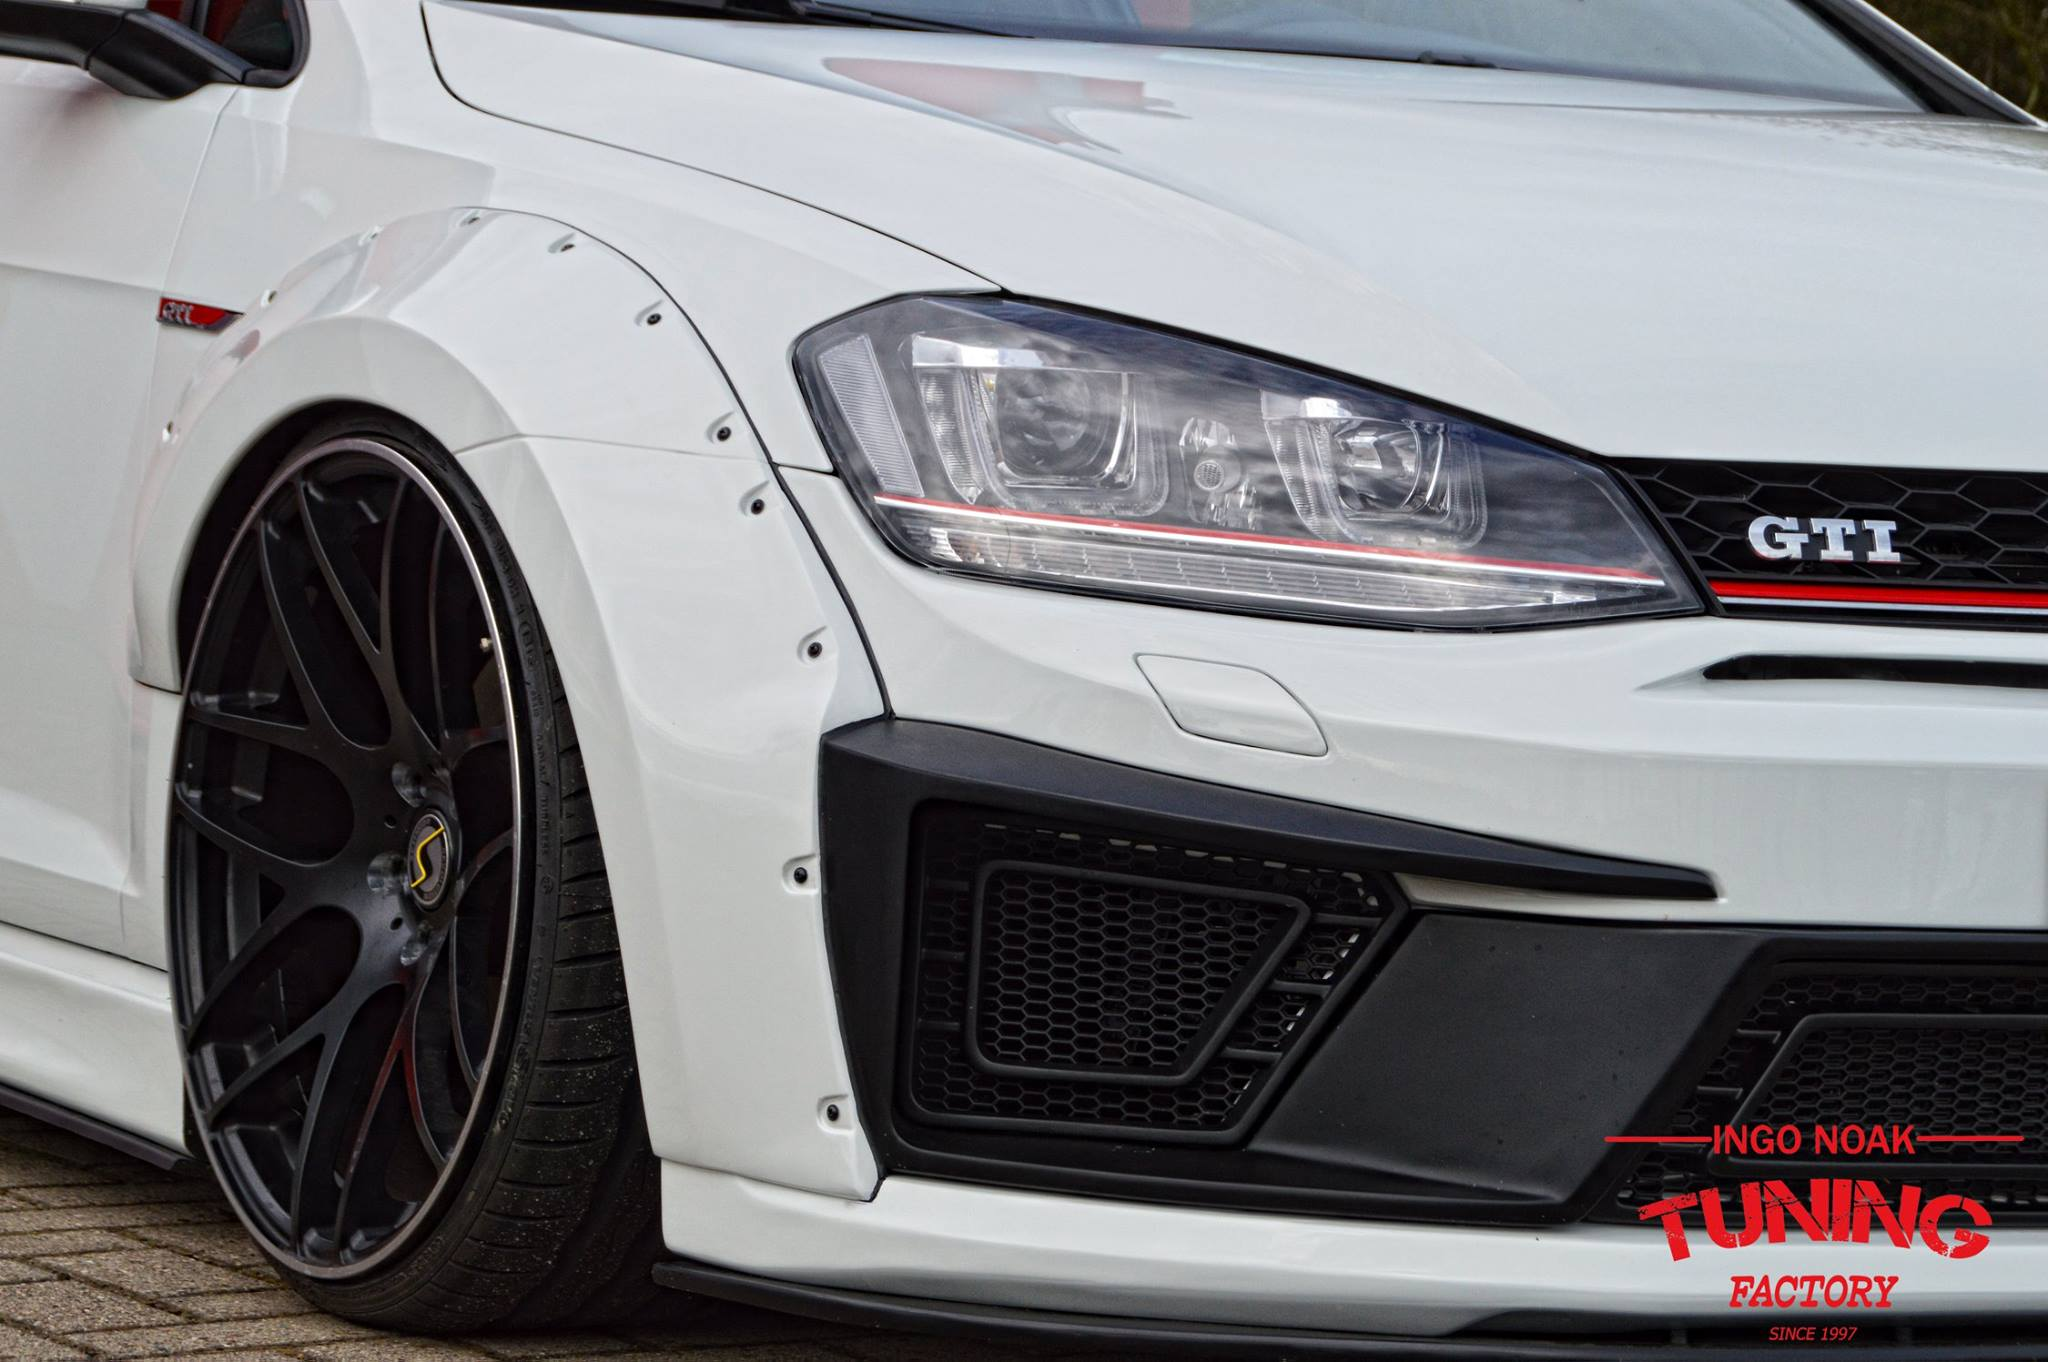 VW_Golf_GTI_by_Ingo_Noak_04